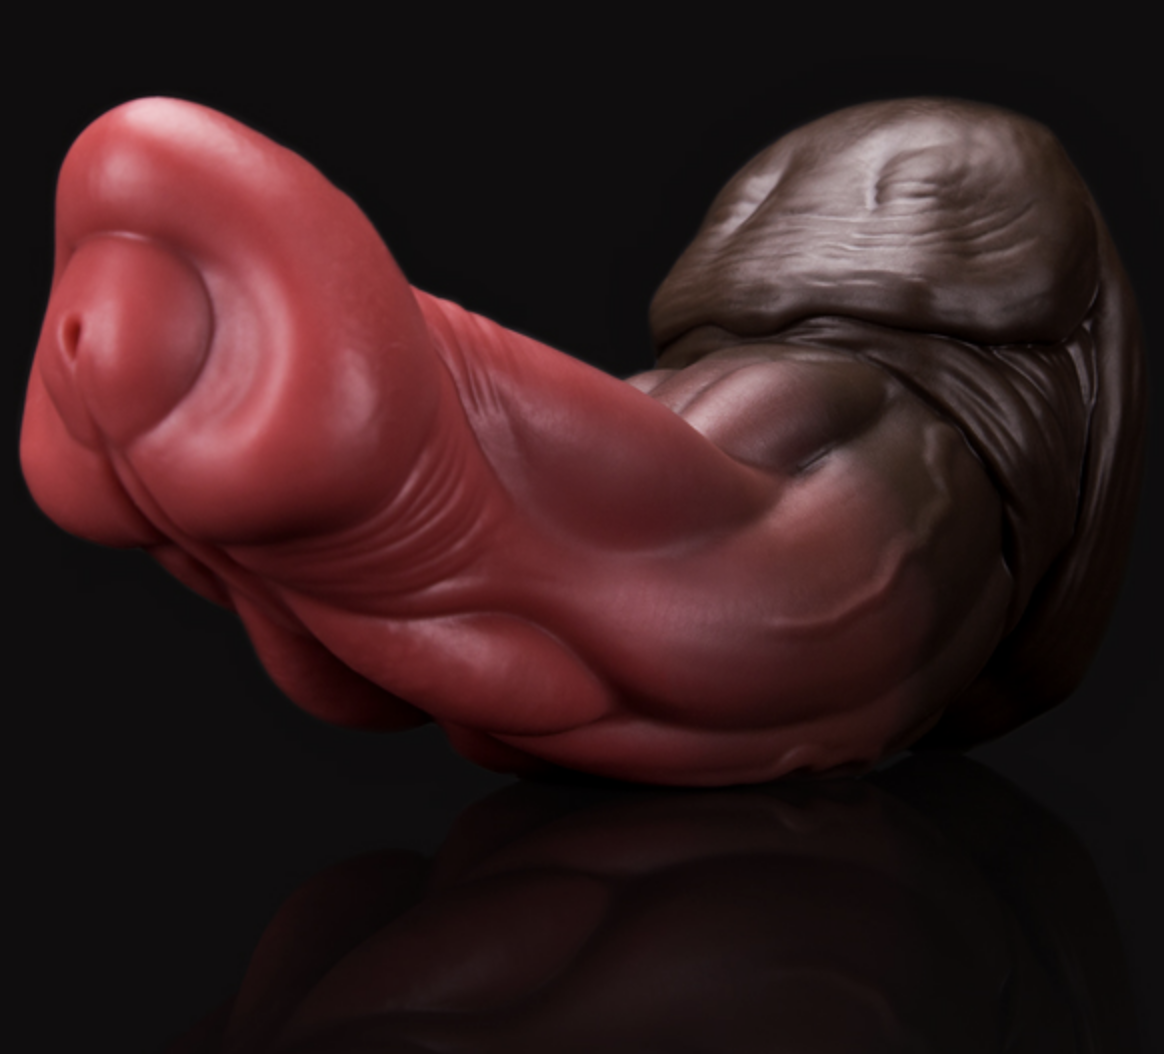 Photo Courtesy of bad-dragon.com